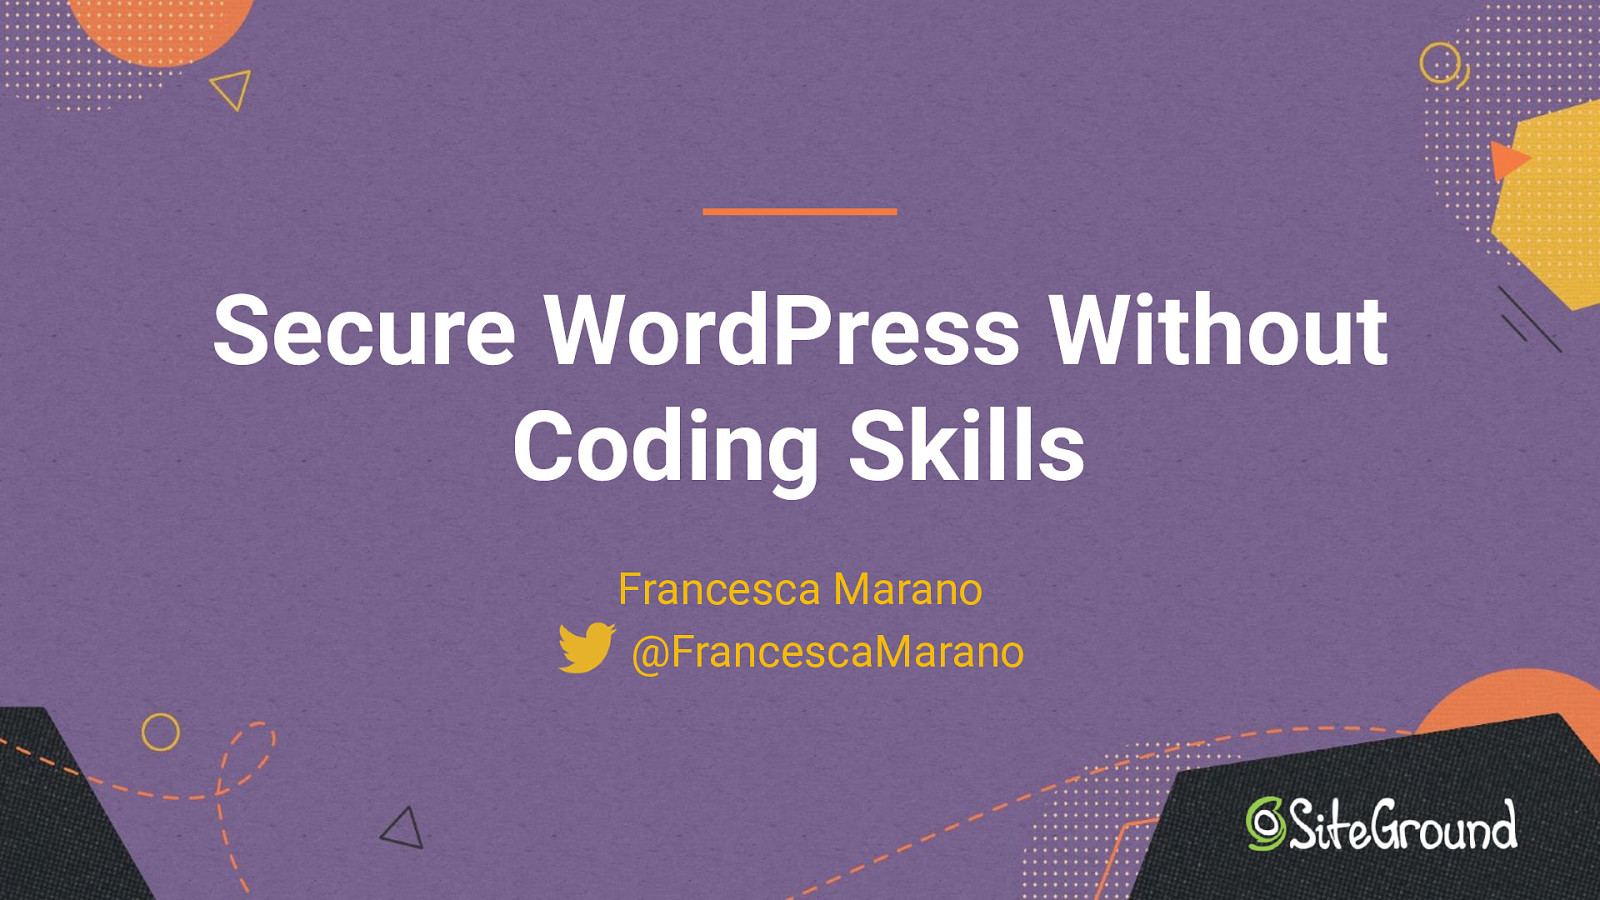 Secure WordPress Without Coding Skills